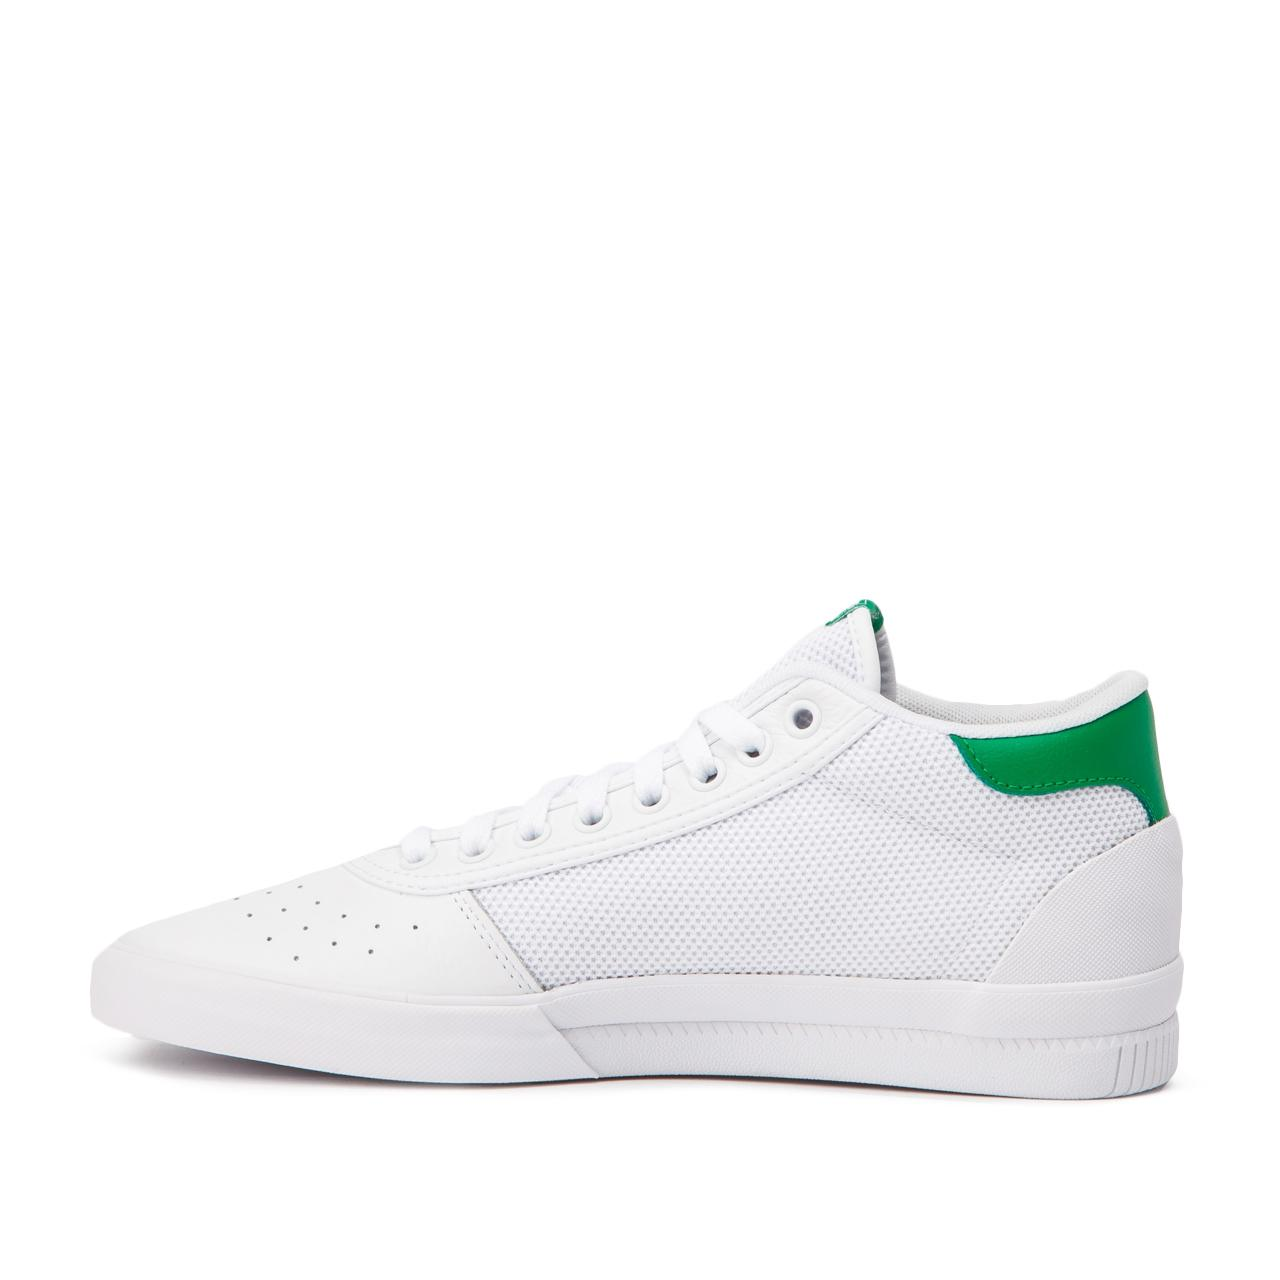 adidas Originals Leather Adidas Lucas Premiere Mid in White for Men